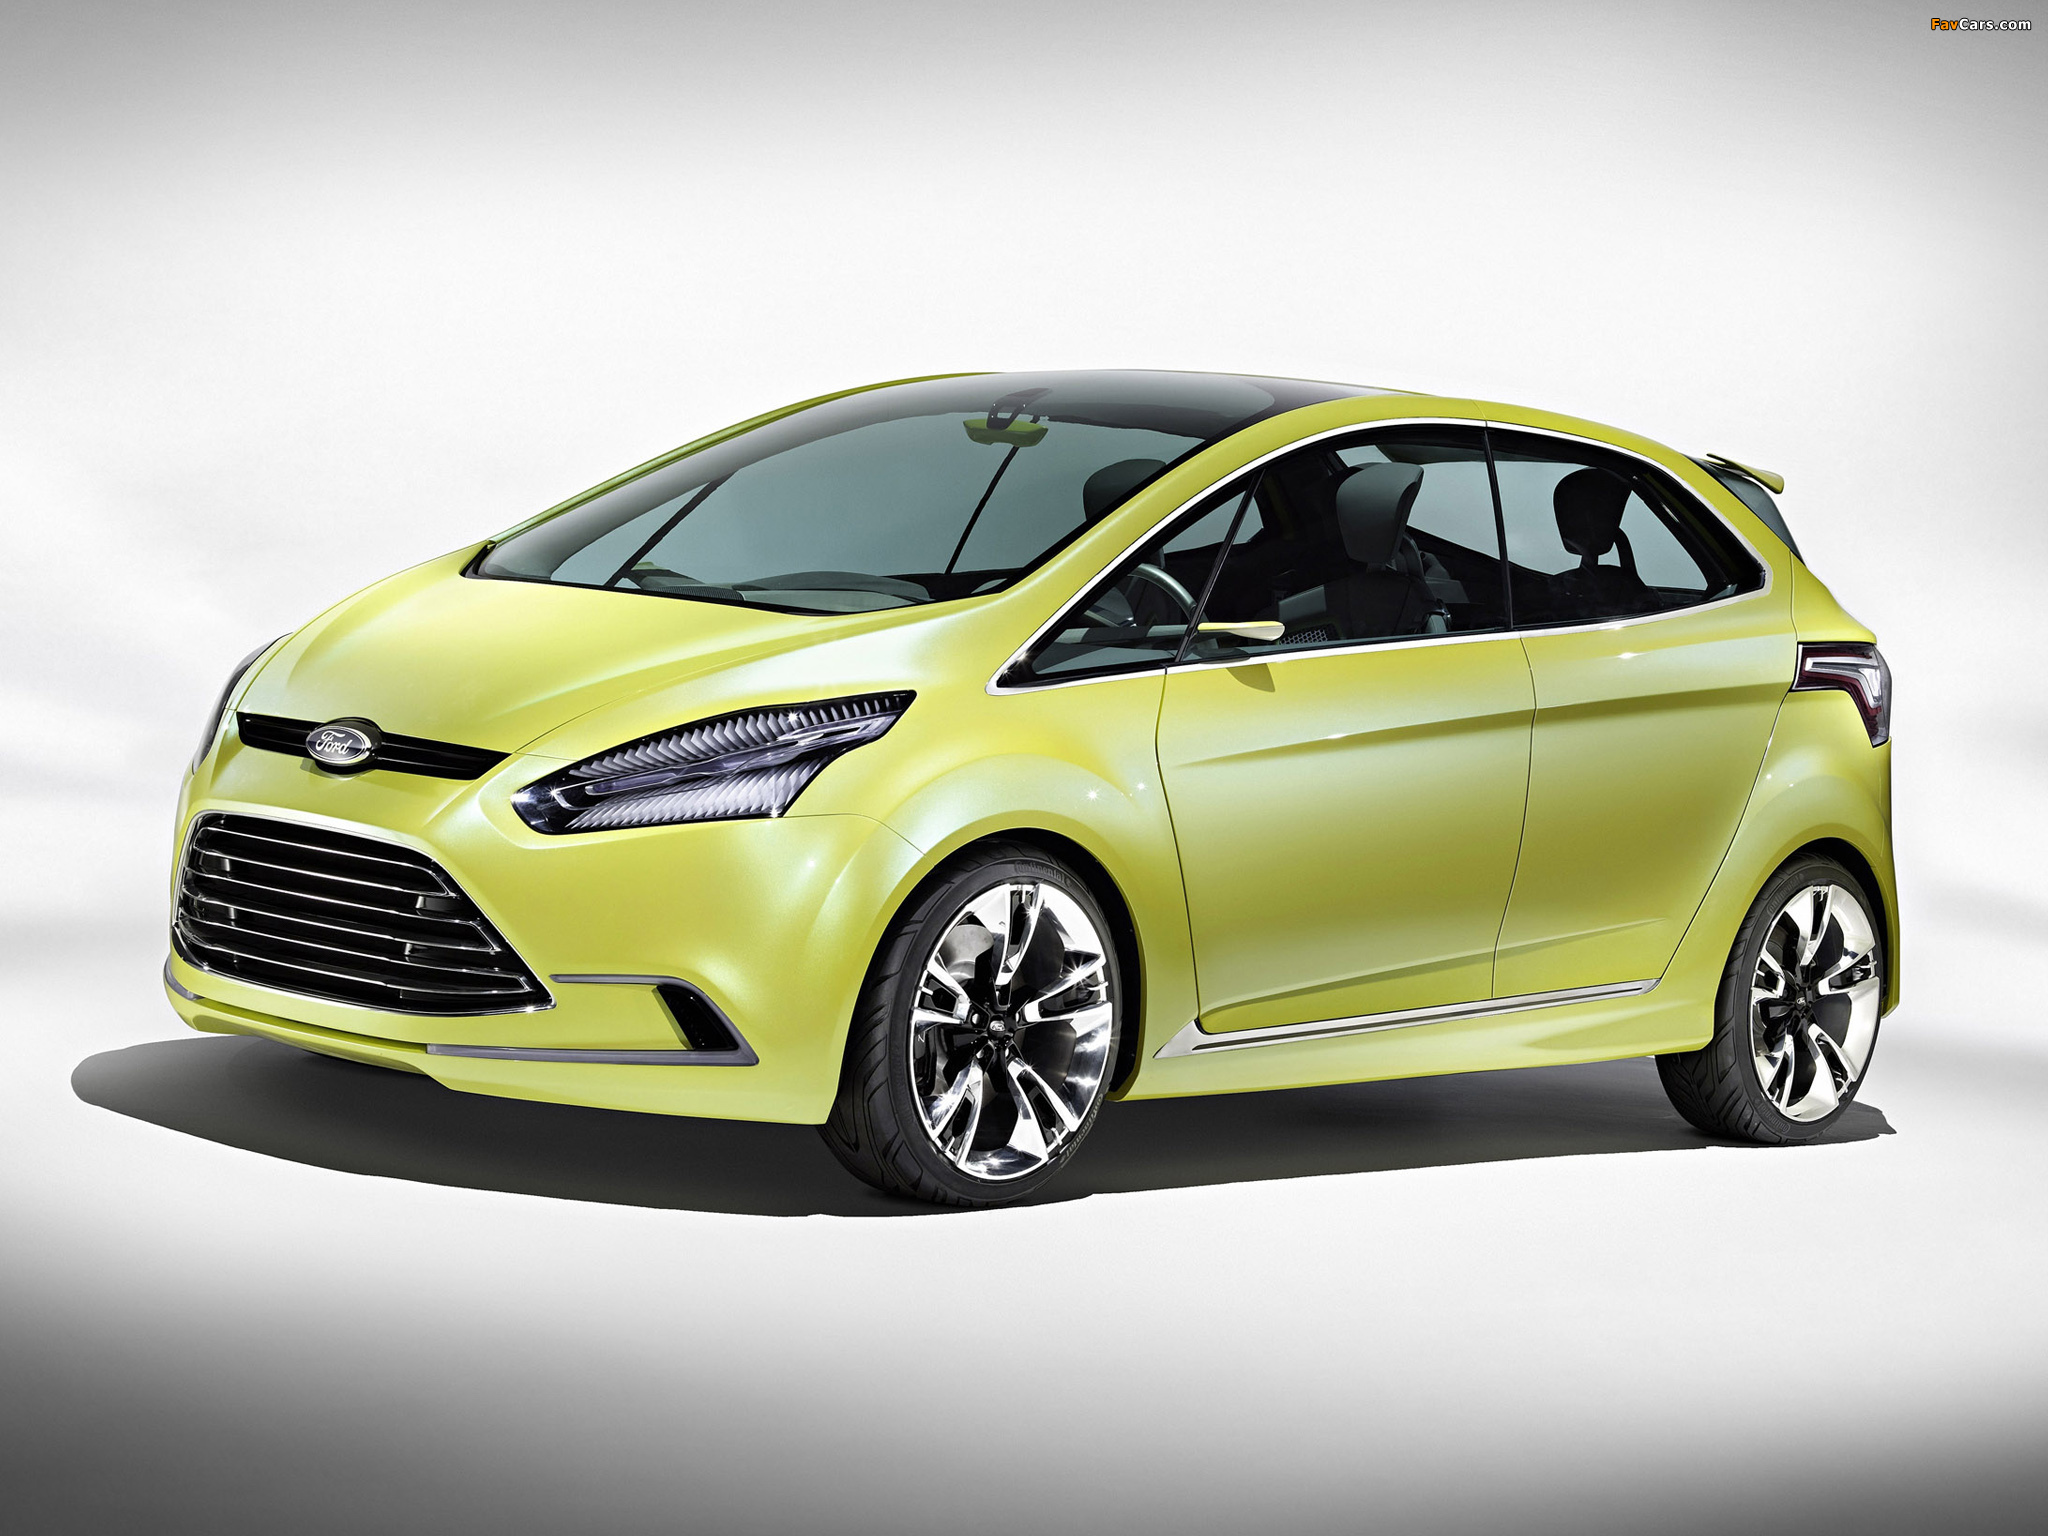 2018 Ford iosis X Concept photo - 2